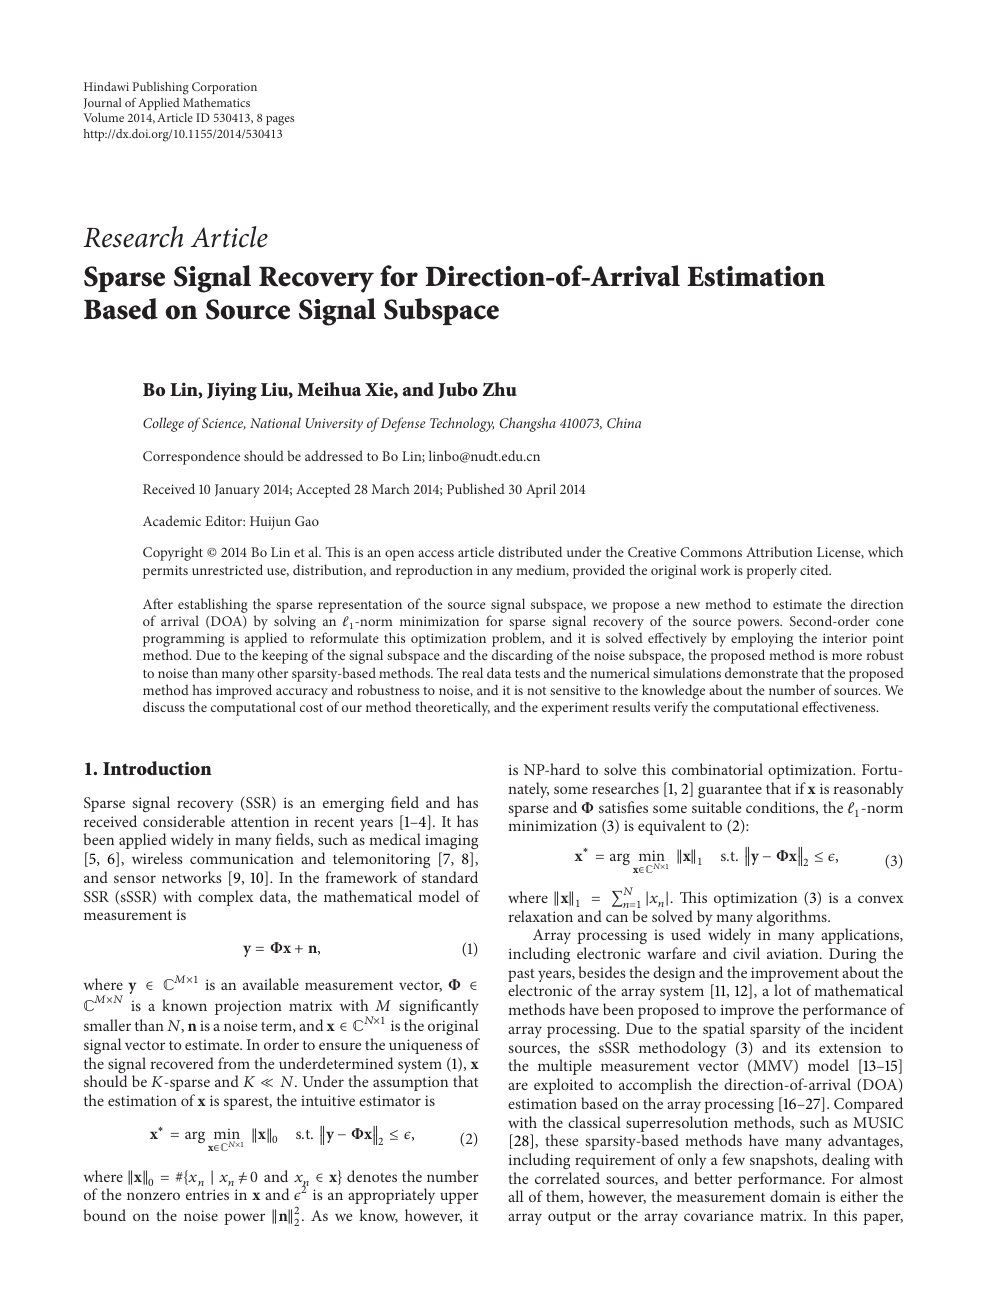 Sparse Signal Recovery for Direction-of-Arrival Estimation